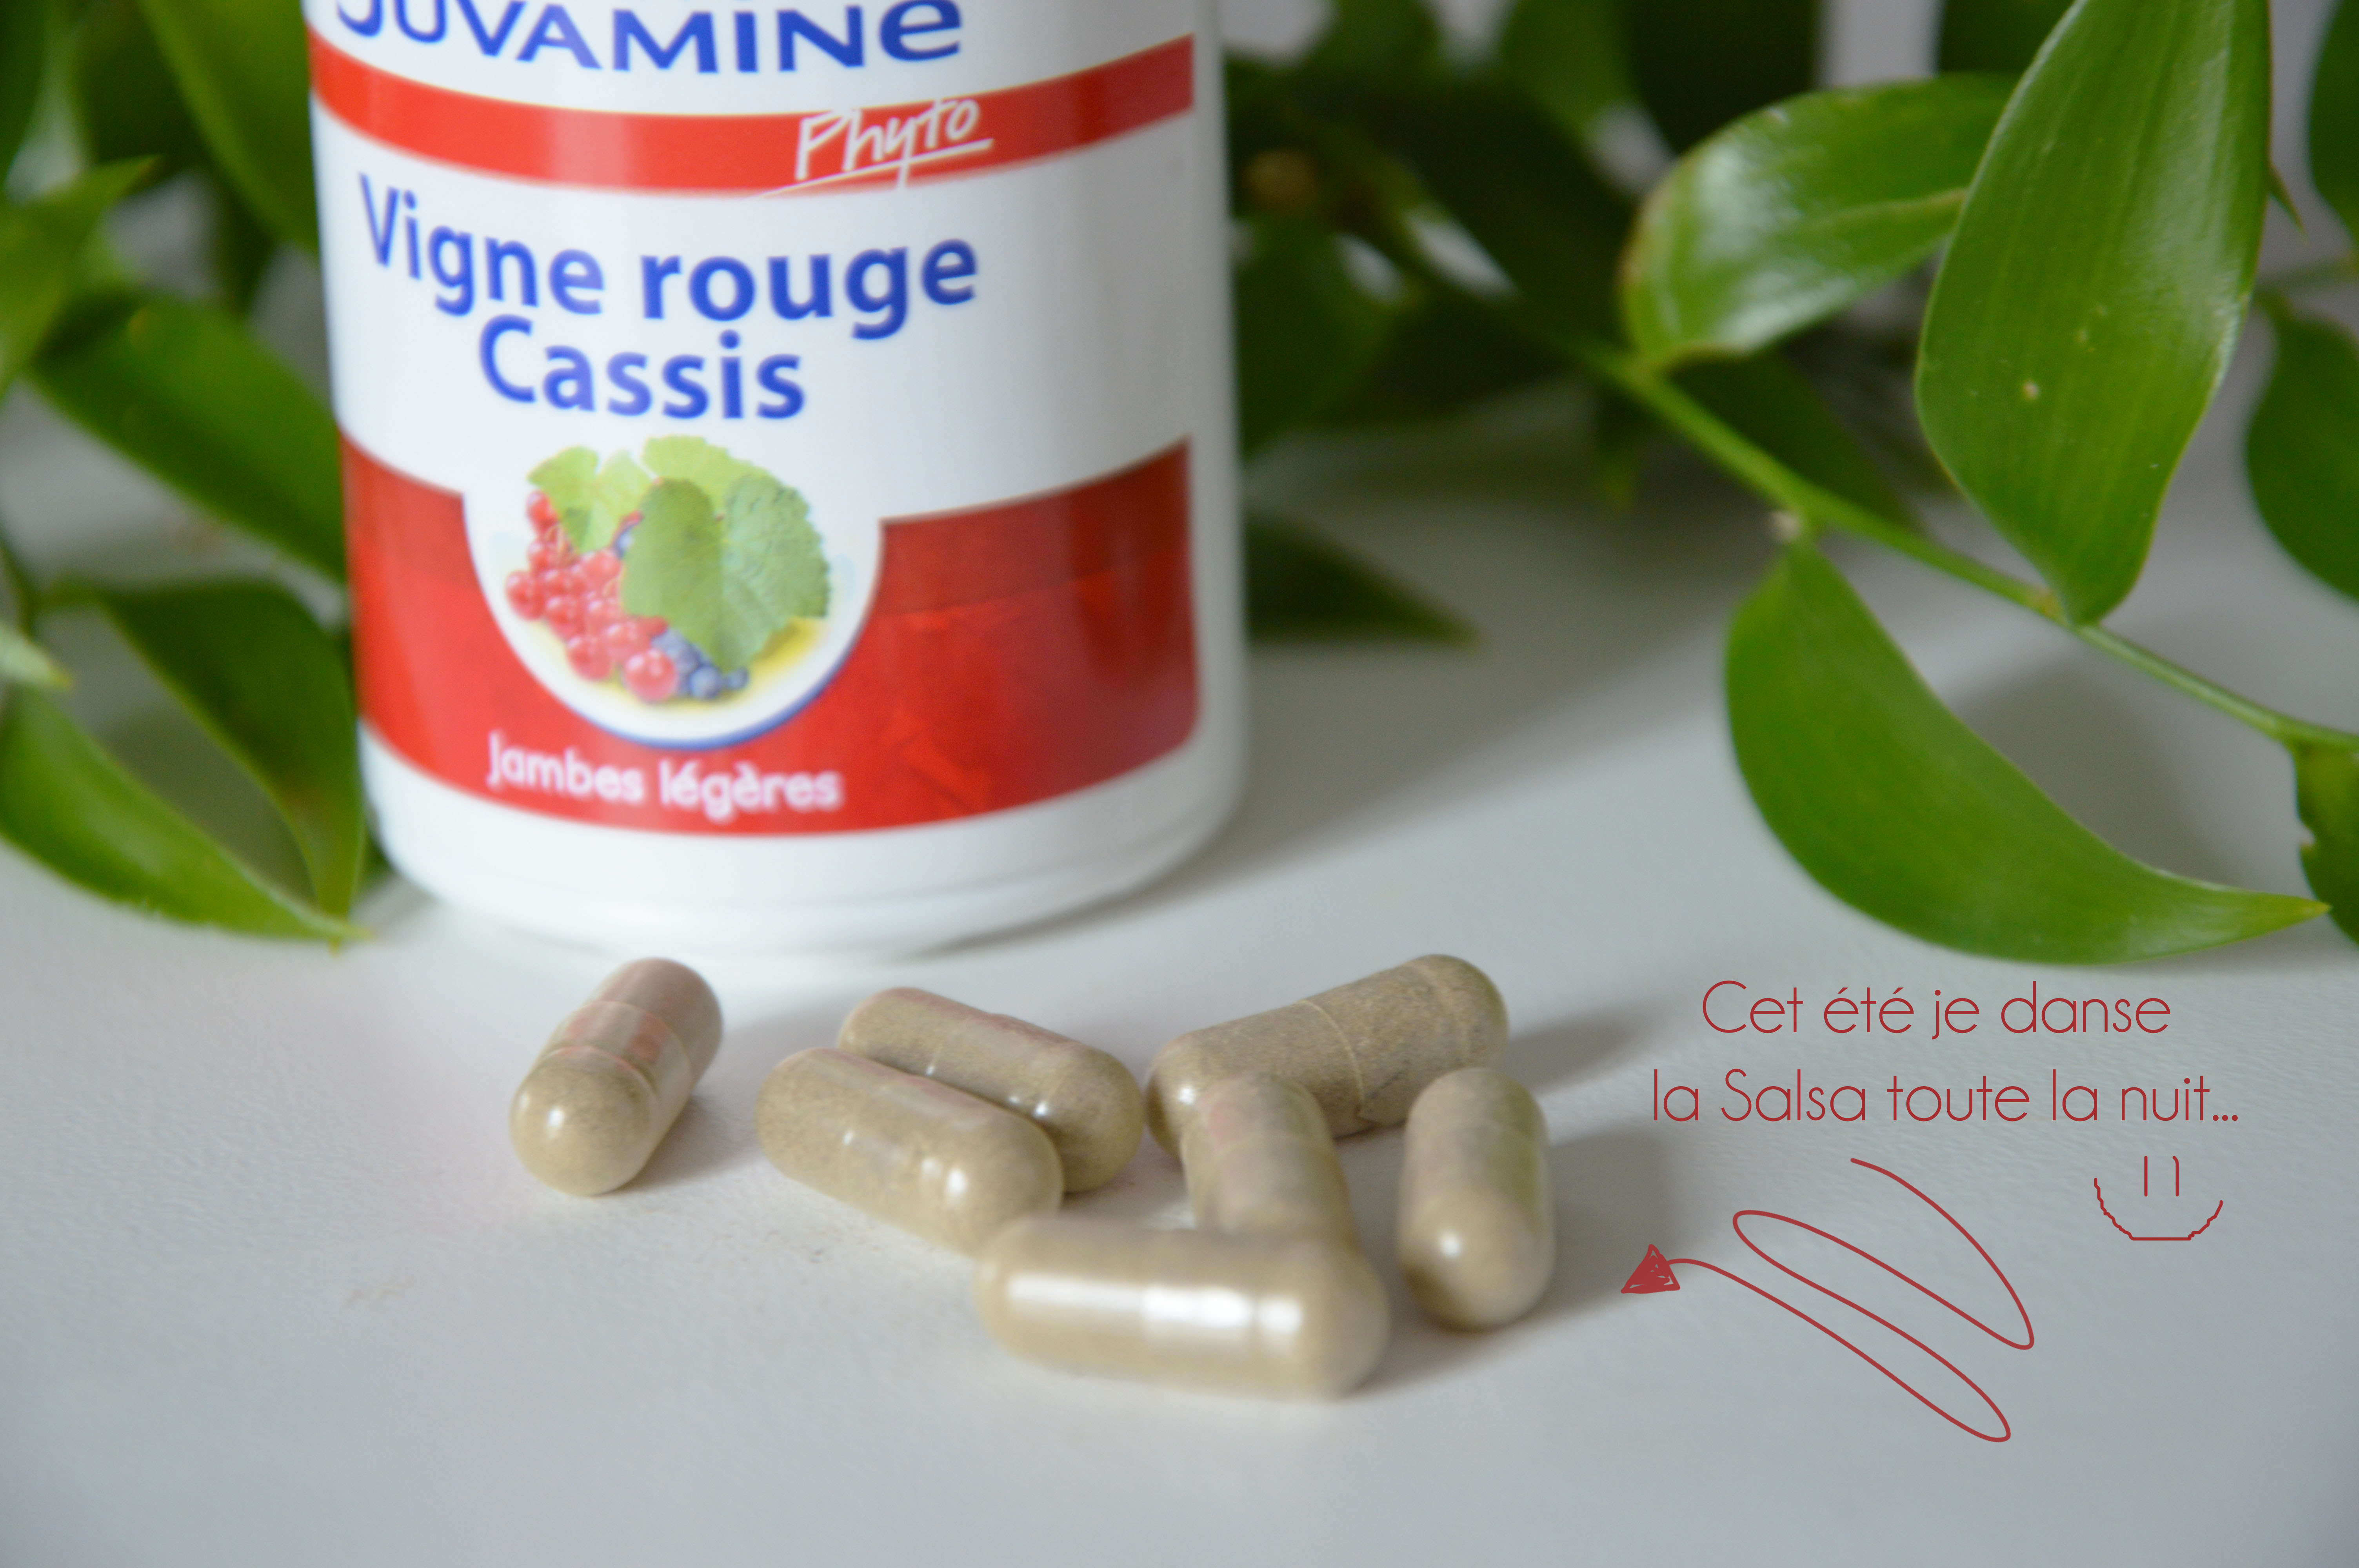 ALITTLEB_BLOG_BEAUTE_JUVAMINE_COMPLEMENTS_ALIMENTAIRES_REVUE_VIGNE_ROUGE_CASSIS_JAMBES_LEGERES_ZOOM